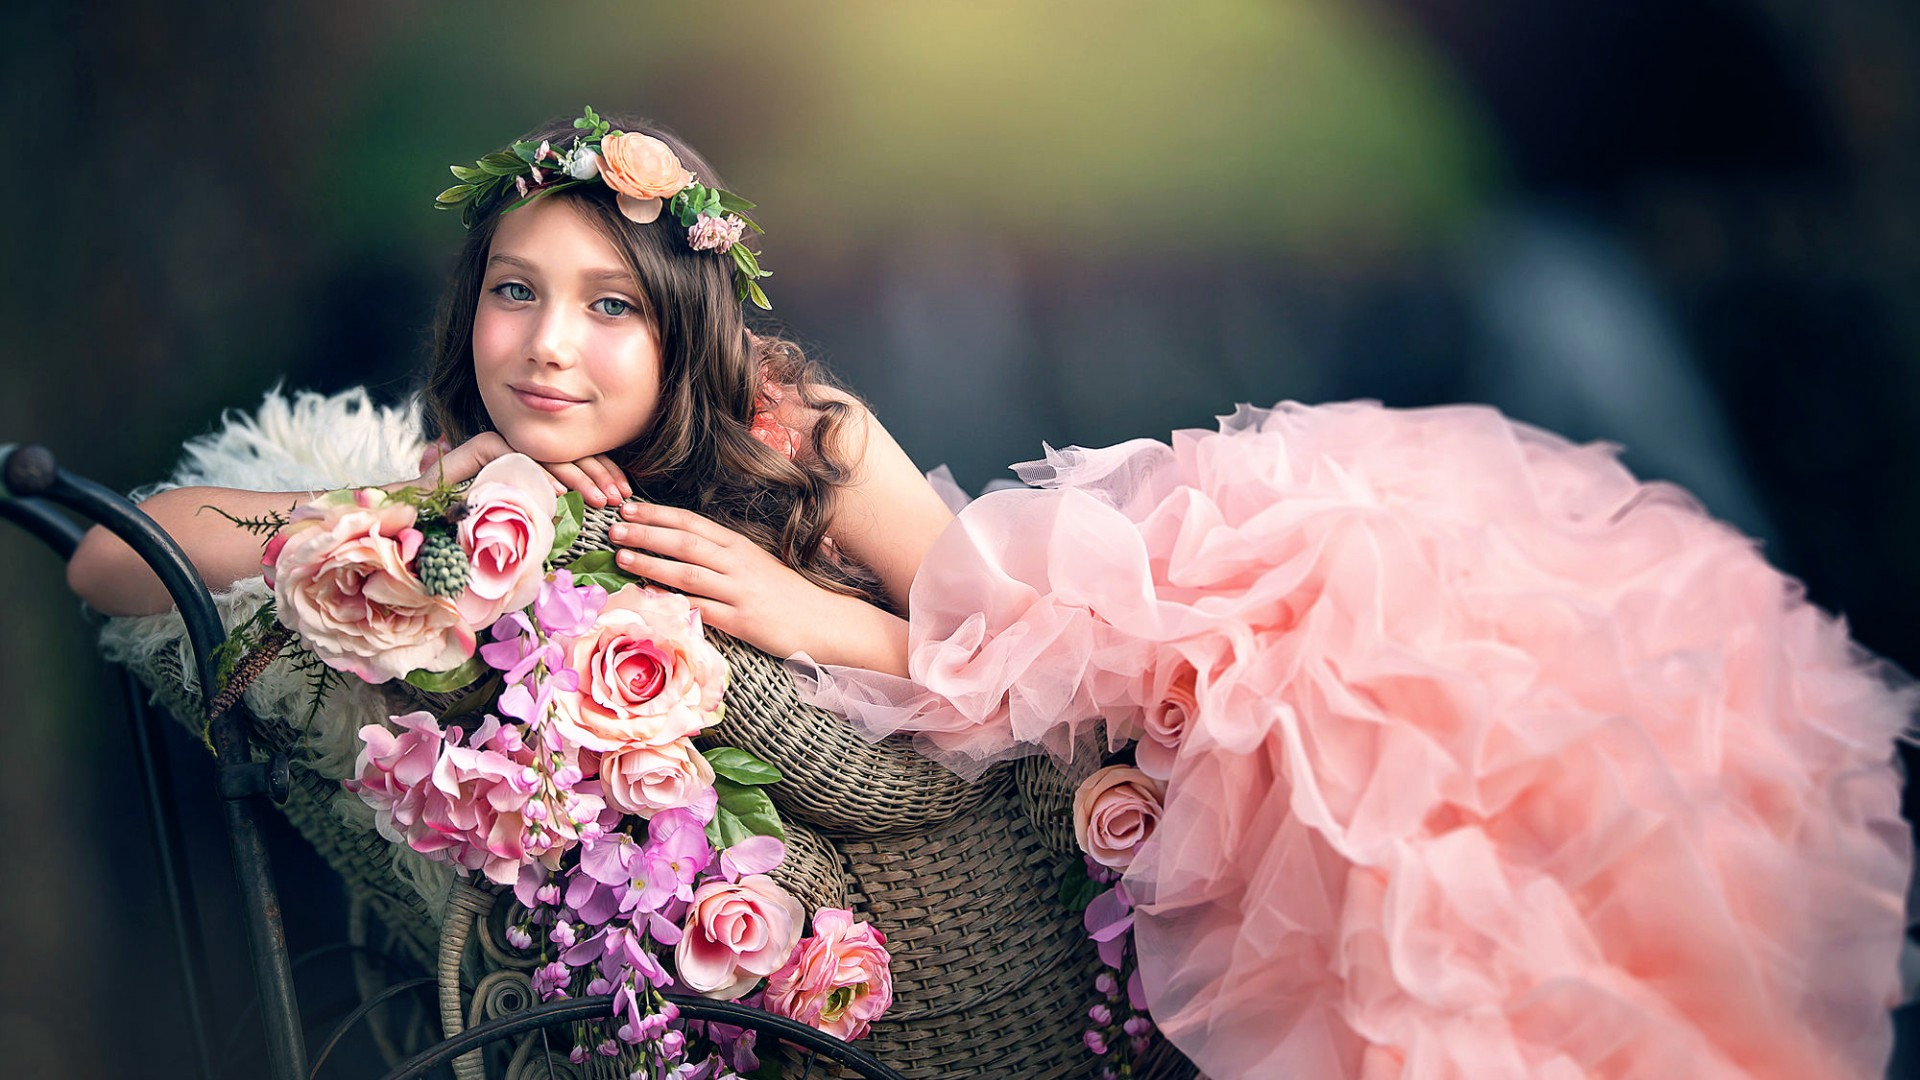 Free photo girl with flowers photoshoot model portrait free girl with flowers izmirmasajfo